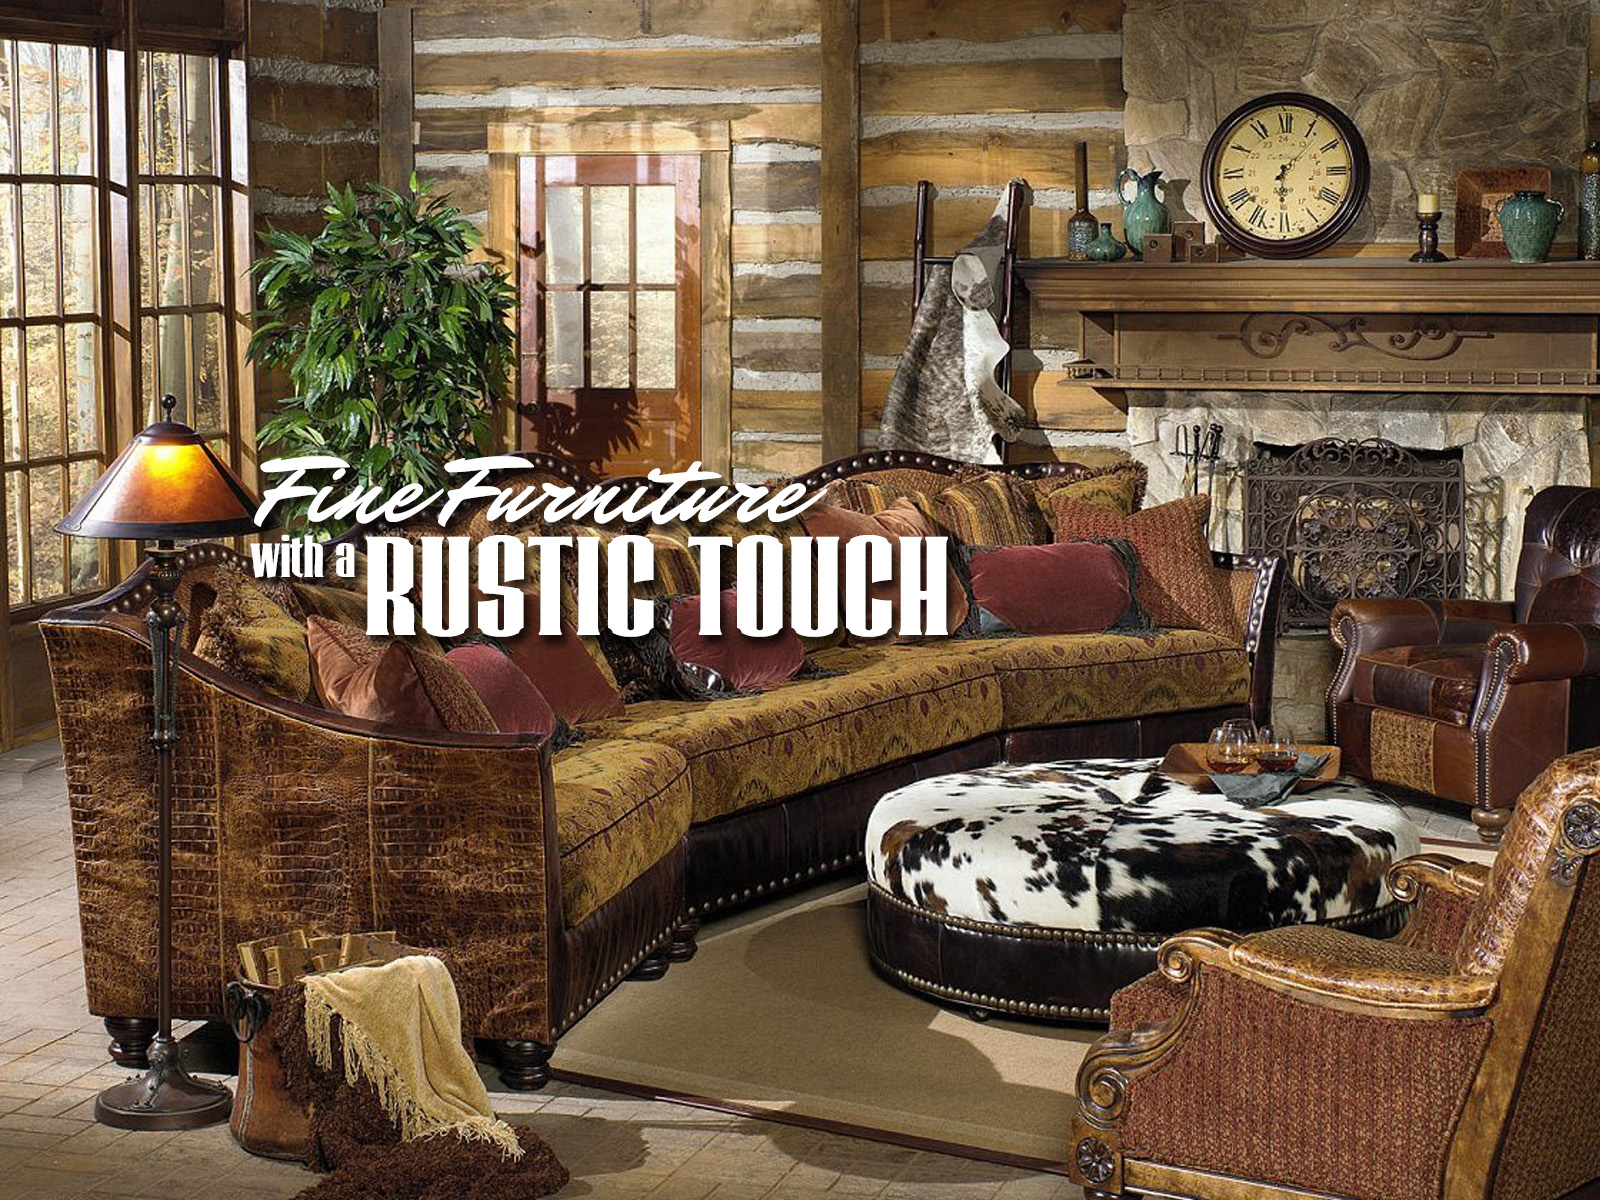 Waller Rustic Furniture   Your premier destination for custom rustic  furniture and accessories. Waller Rustic Furniture   Your premier destination for custom